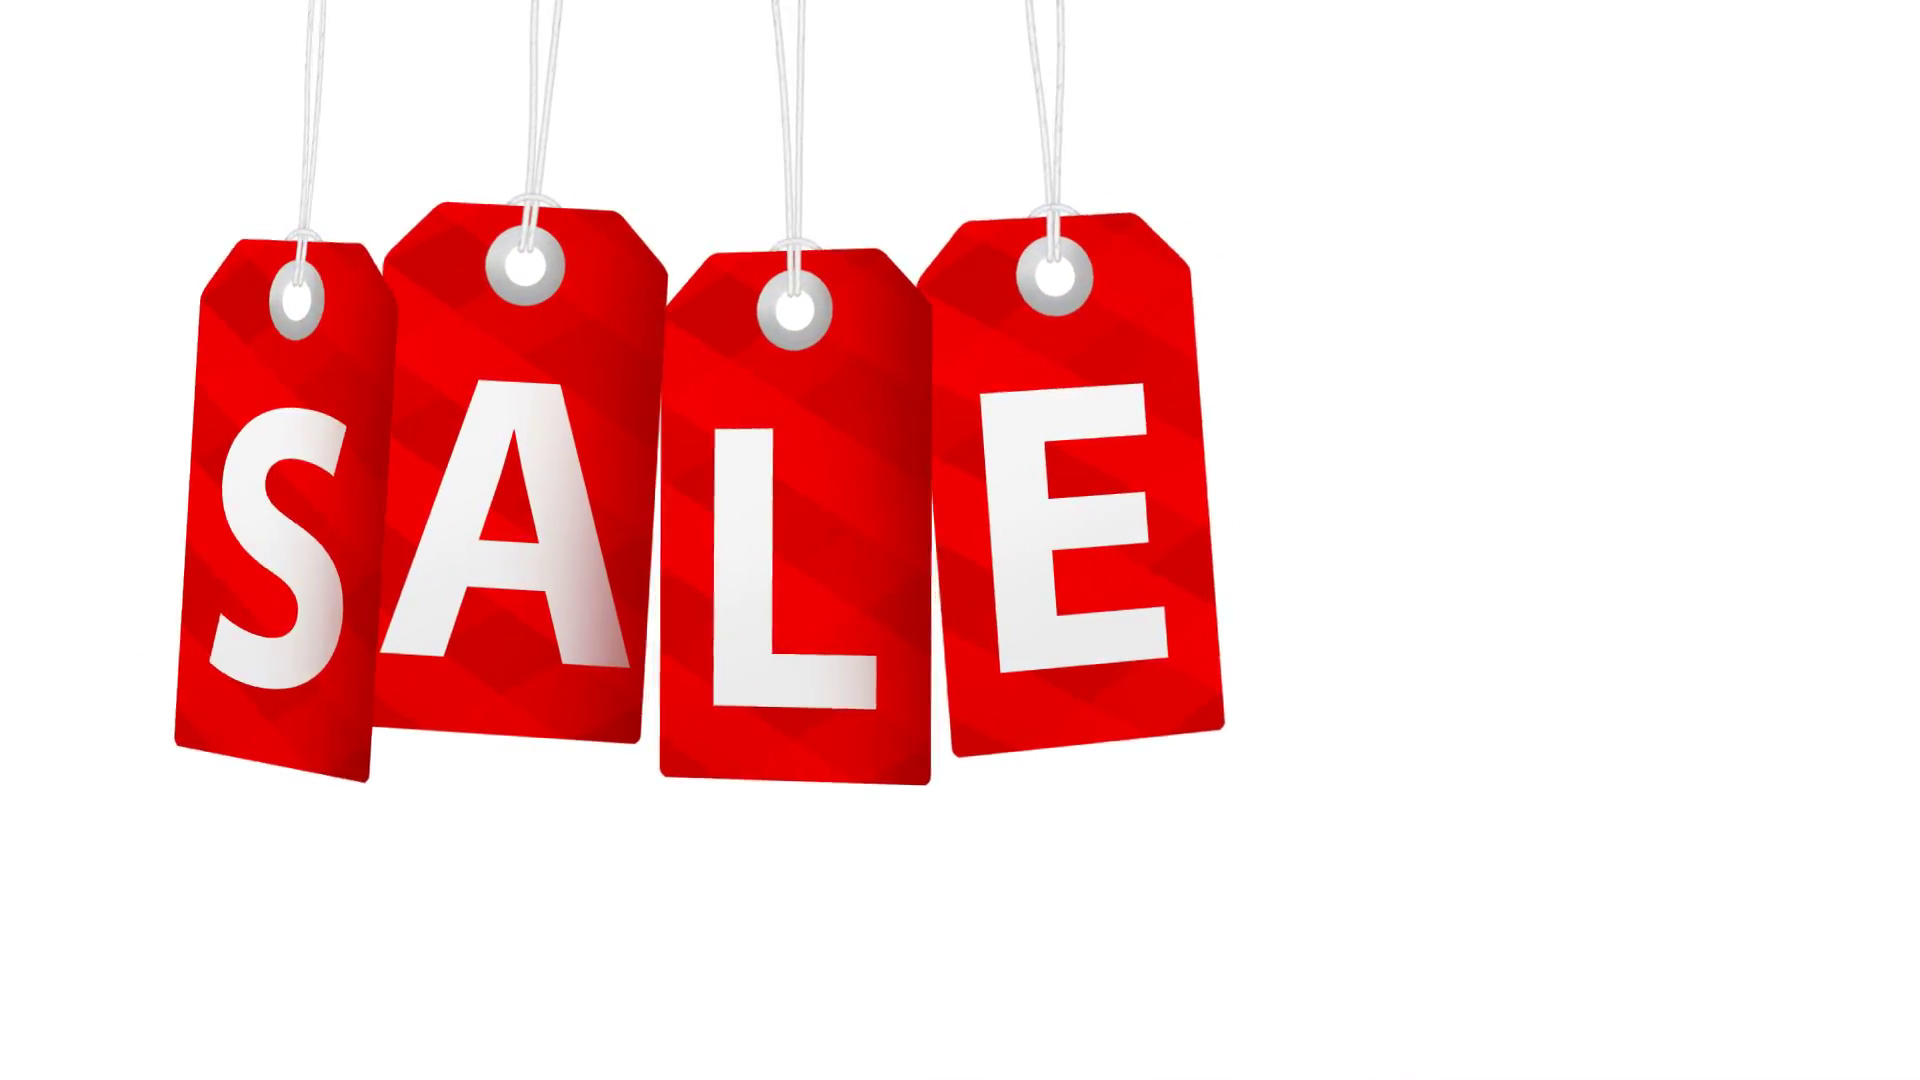 Big sale animation with red tags rotating for shopping sales and ...